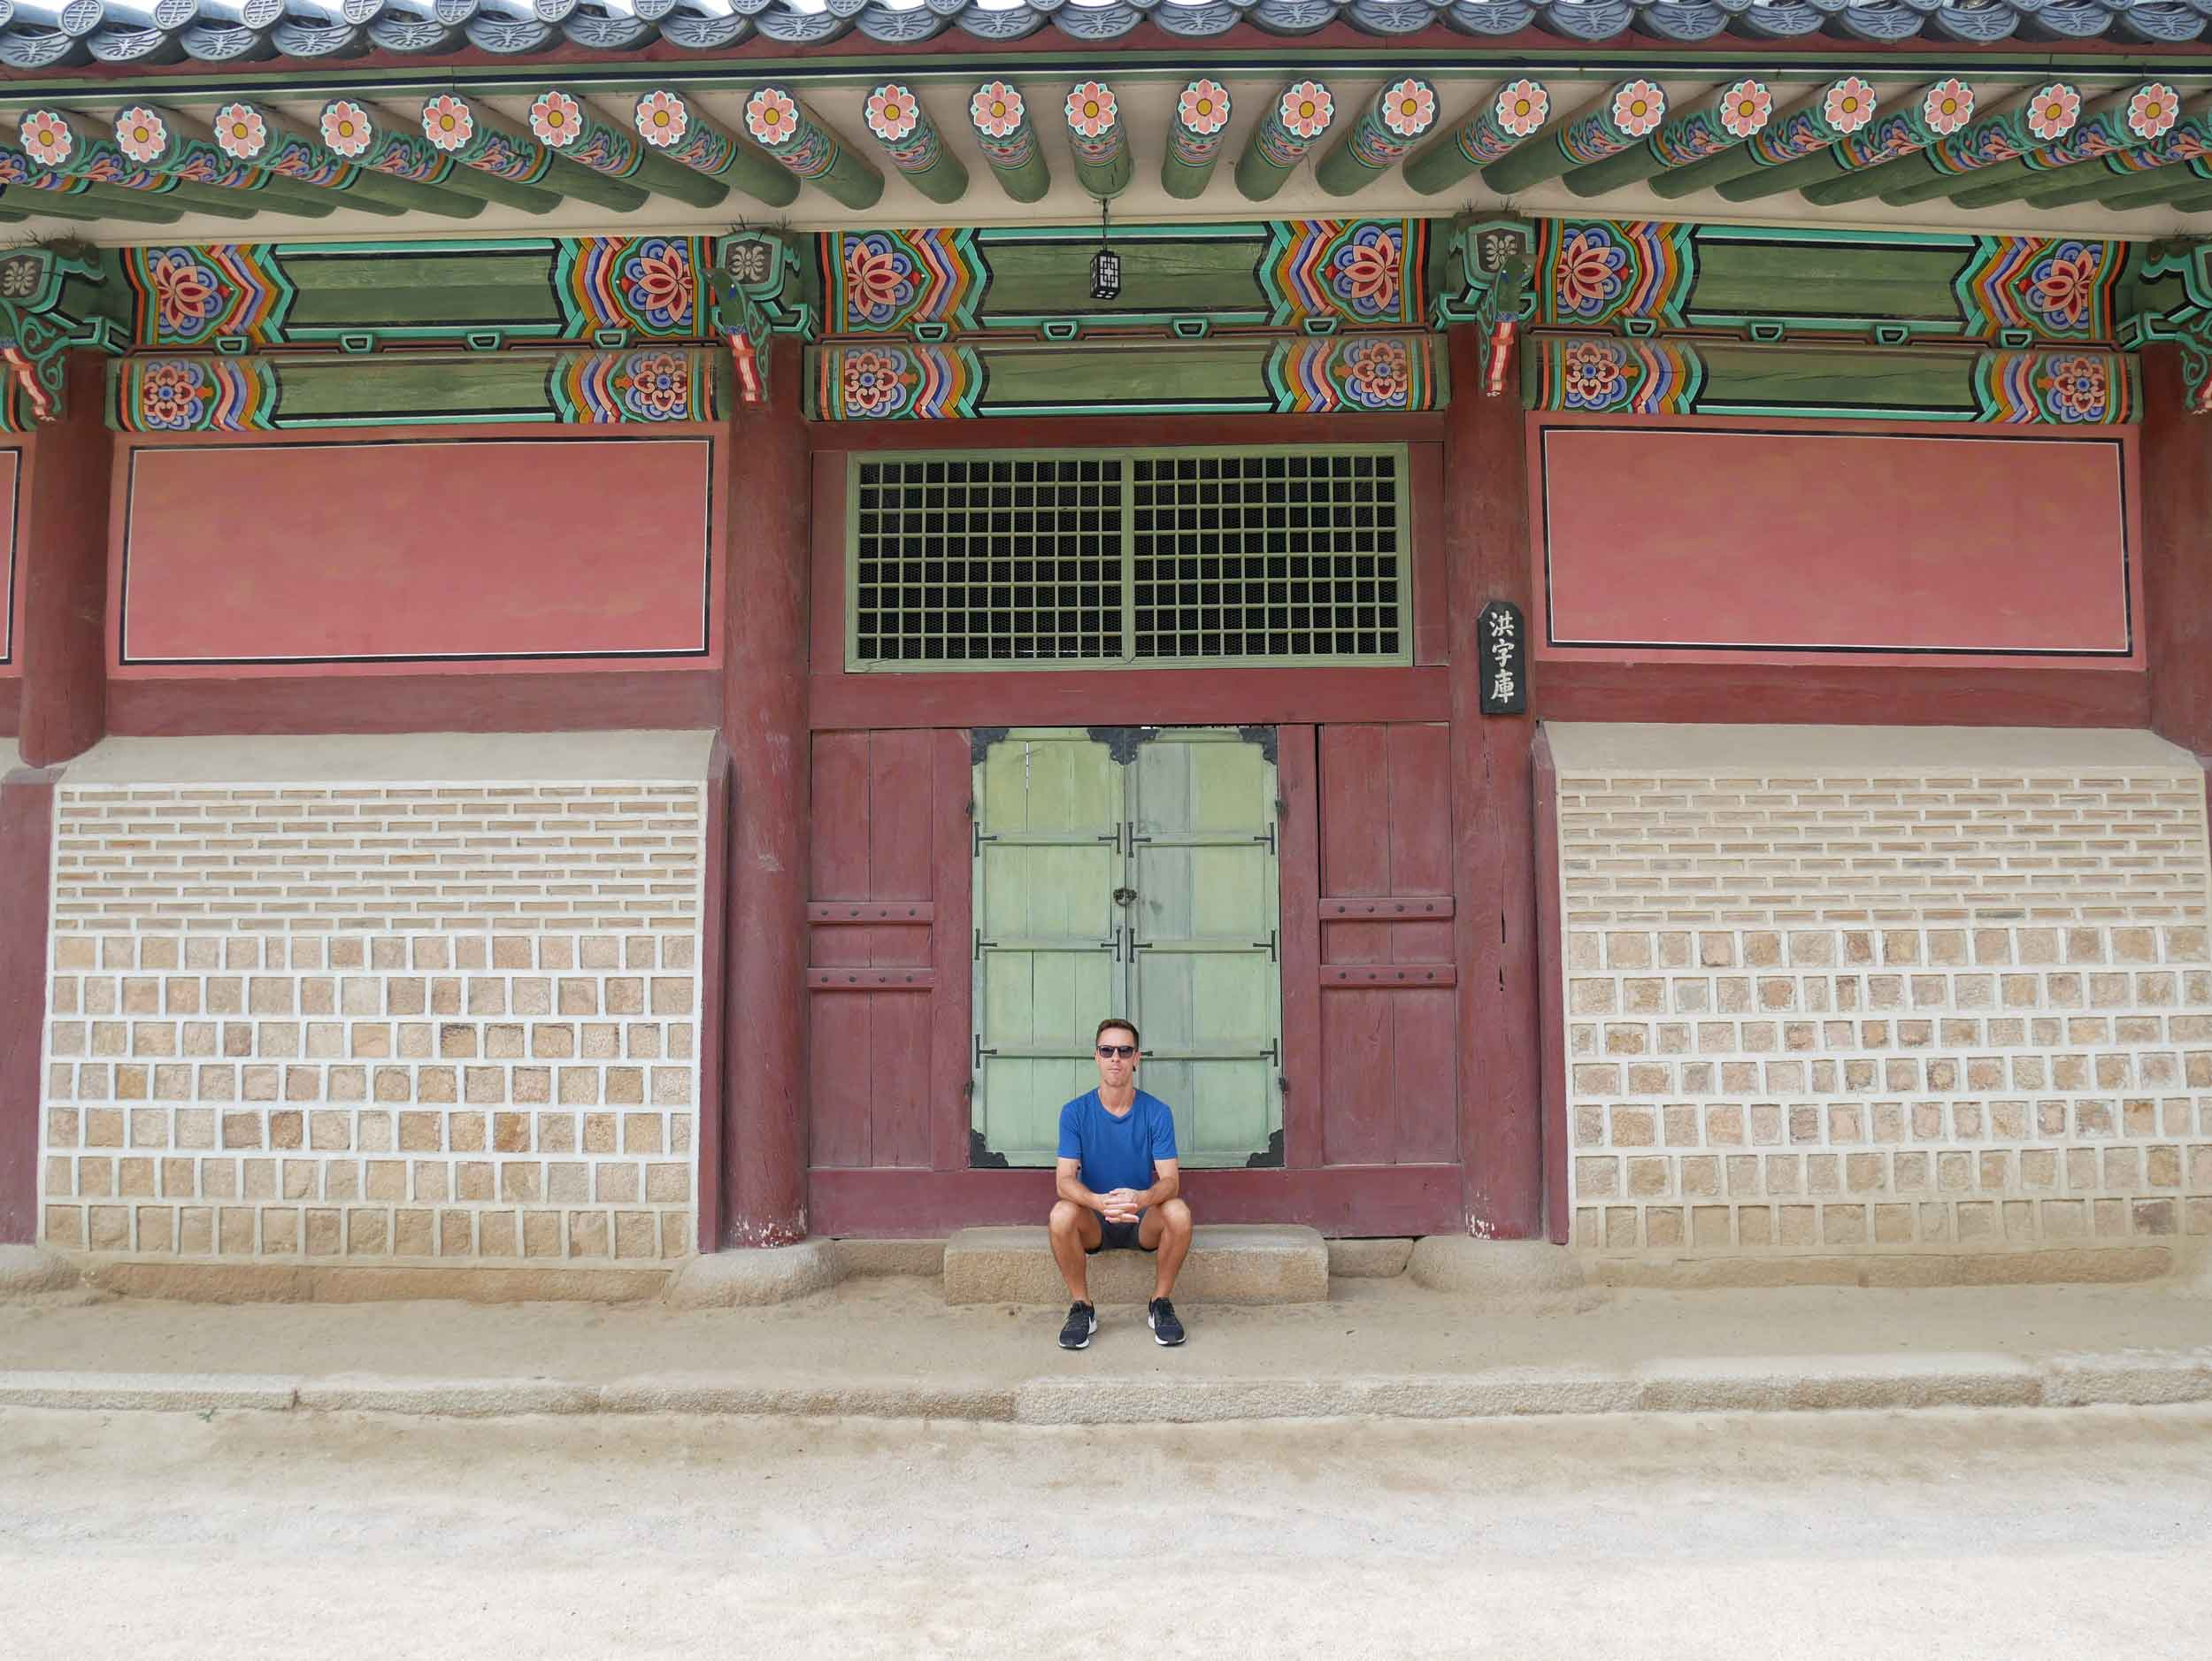 Gyeongbokgung Palace is made up of many free-standing buildings, including the throne hall, council hall and the king's residence.